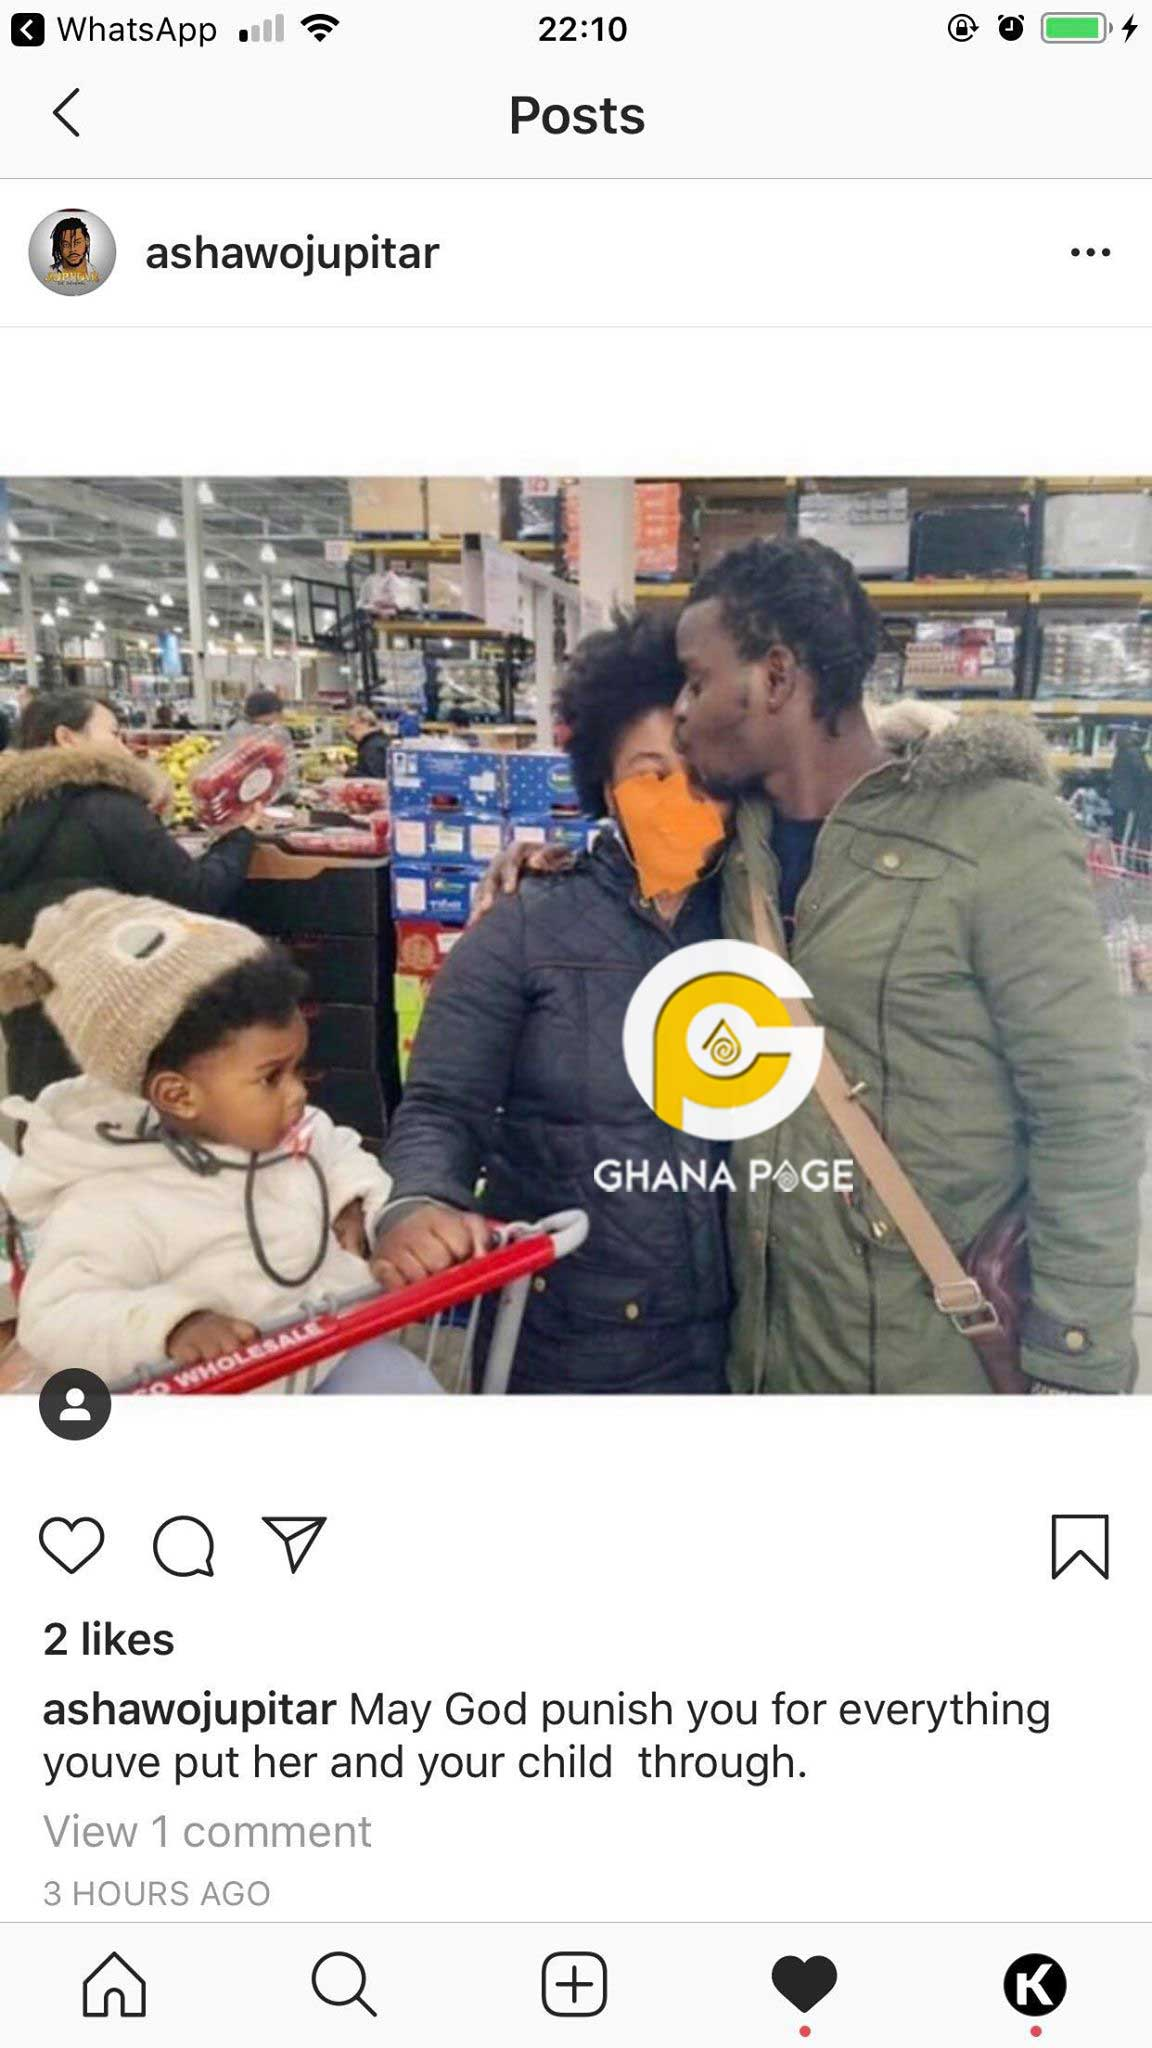 Jupitar wife child UK 2 - I have never been married in the UK-Jupitar clears the air on rumors of a first wife and child in the UK